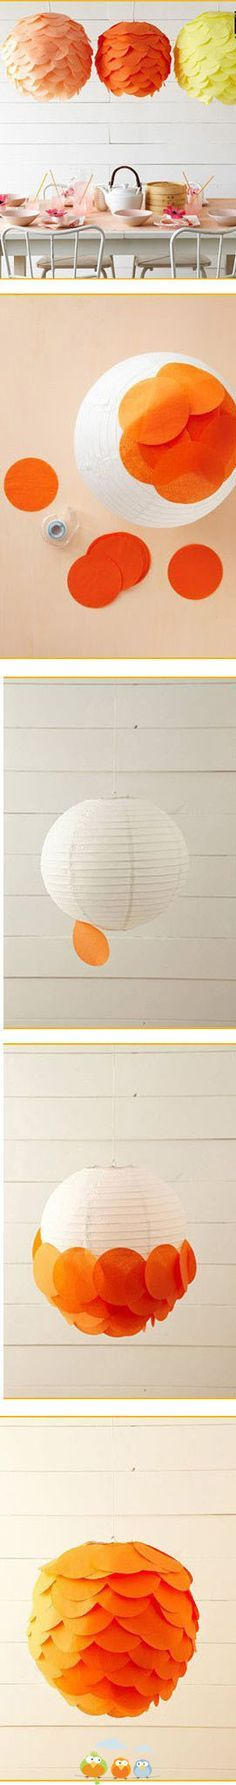 1000 ideas about boule chinoise on pinterest boule chinoise papier lanter - Customiser boule chinoise papier ...